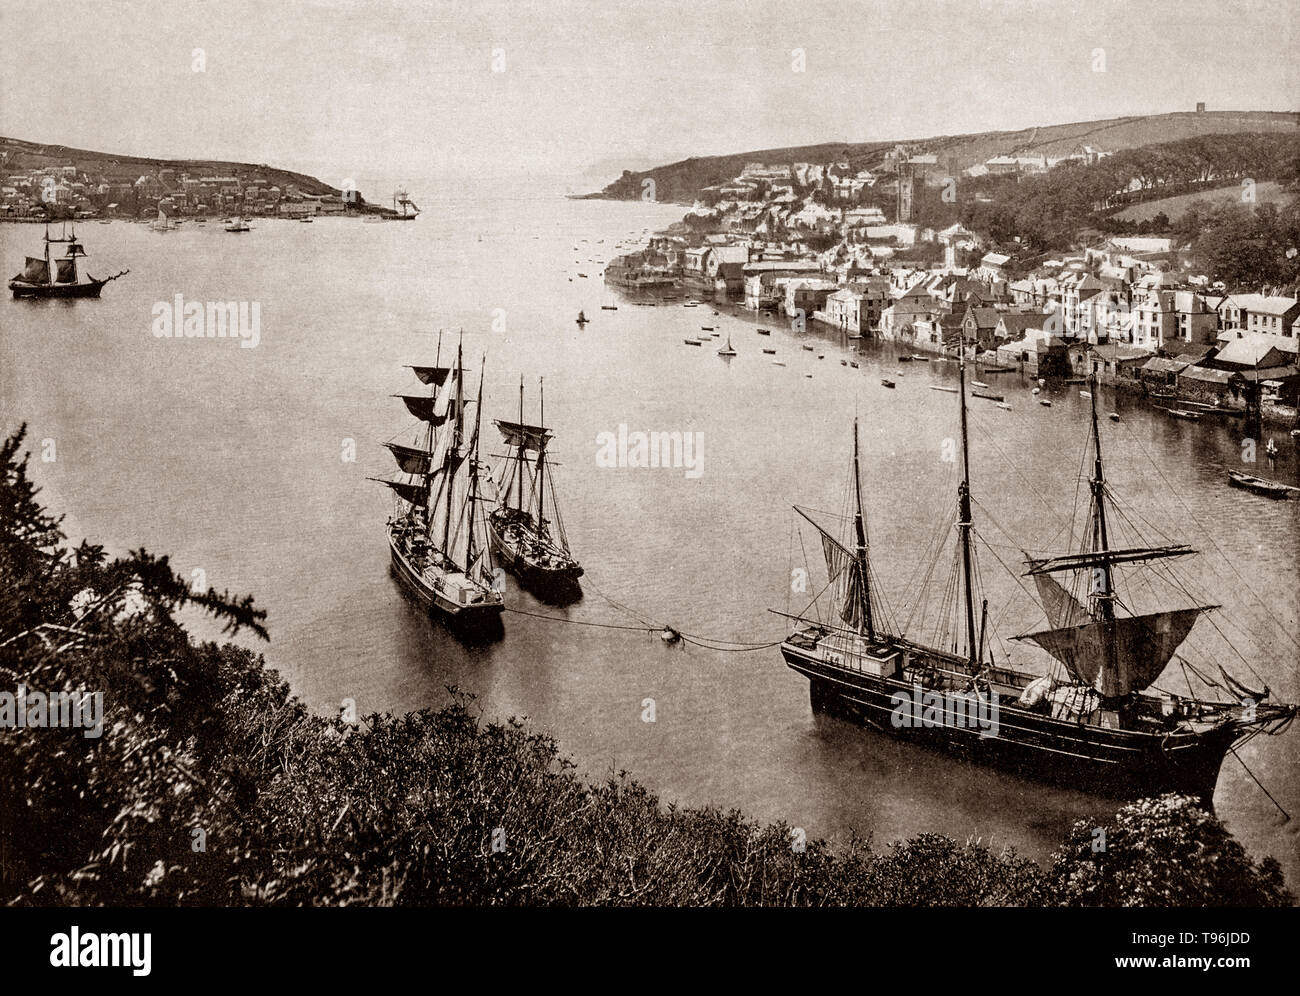 A late 19th Century view of  shipping in the harbour at Fowey, a small town and cargo port at the mouth of the River Fowey in south Cornwall, England. The estuary of the River Fowey forms a natural harbour which enabled the town to become an important trading centre. Privateers also made use of the sheltered harbourage. The Lostwithiel and Fowey Railway brought China clay here for export. - Stock Image